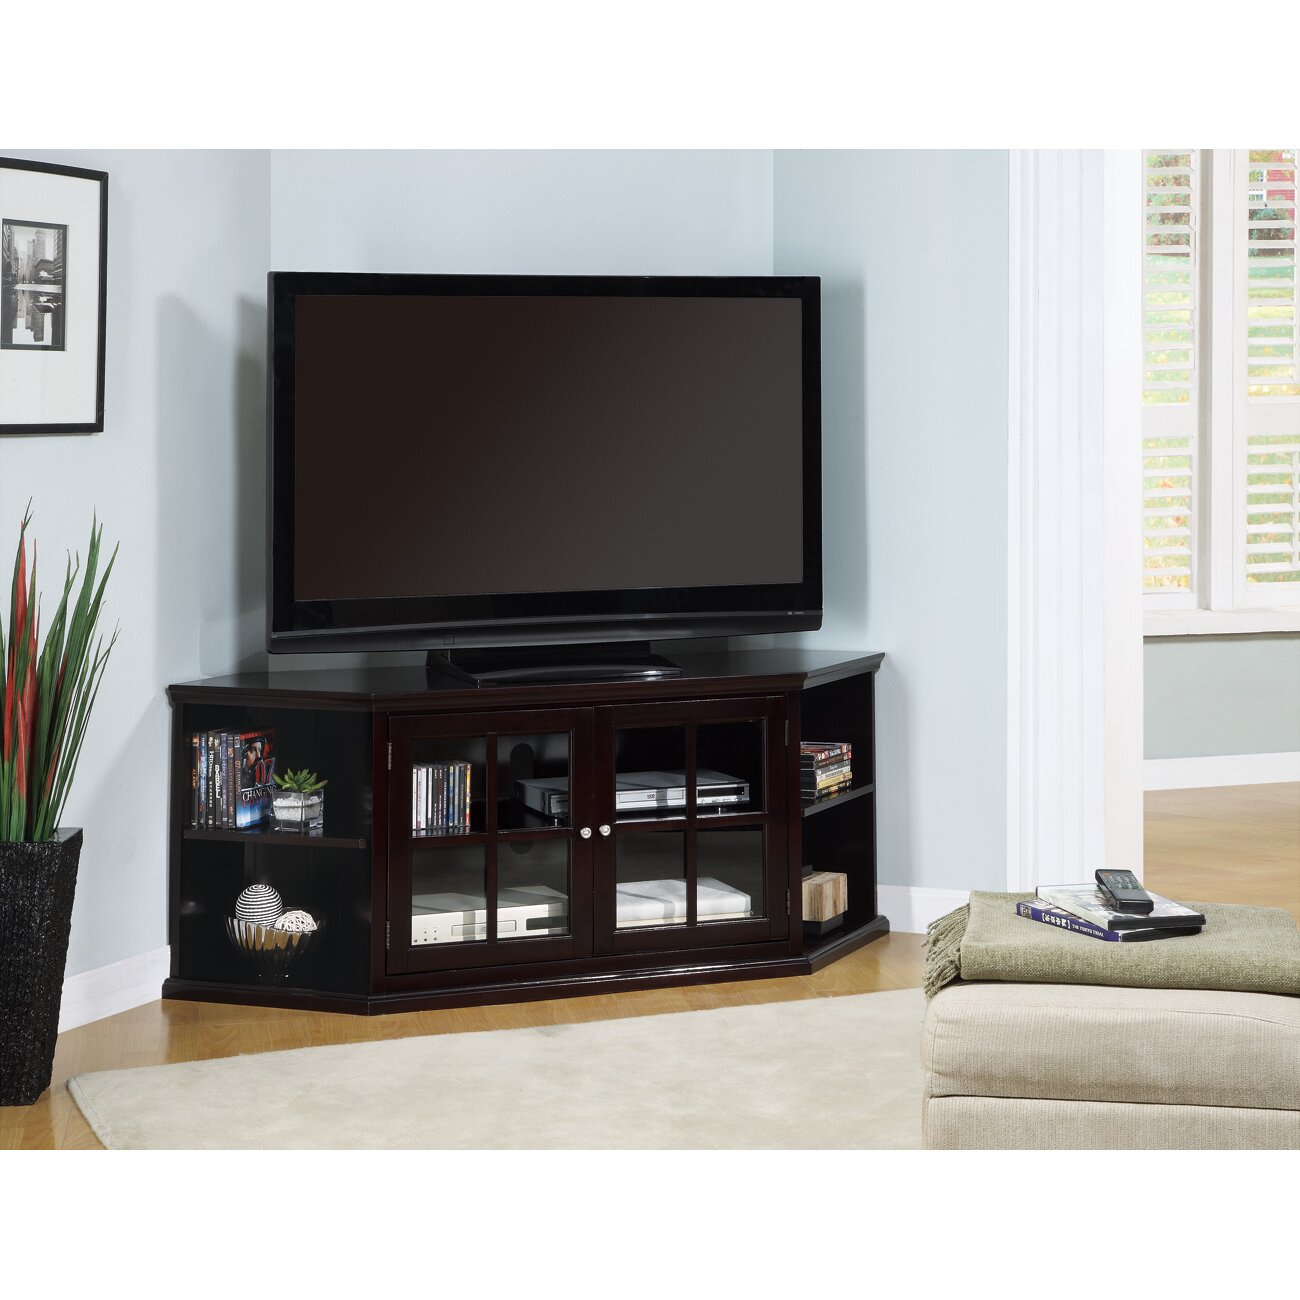 60 inch corner tv stand - Tremont Tv Stand